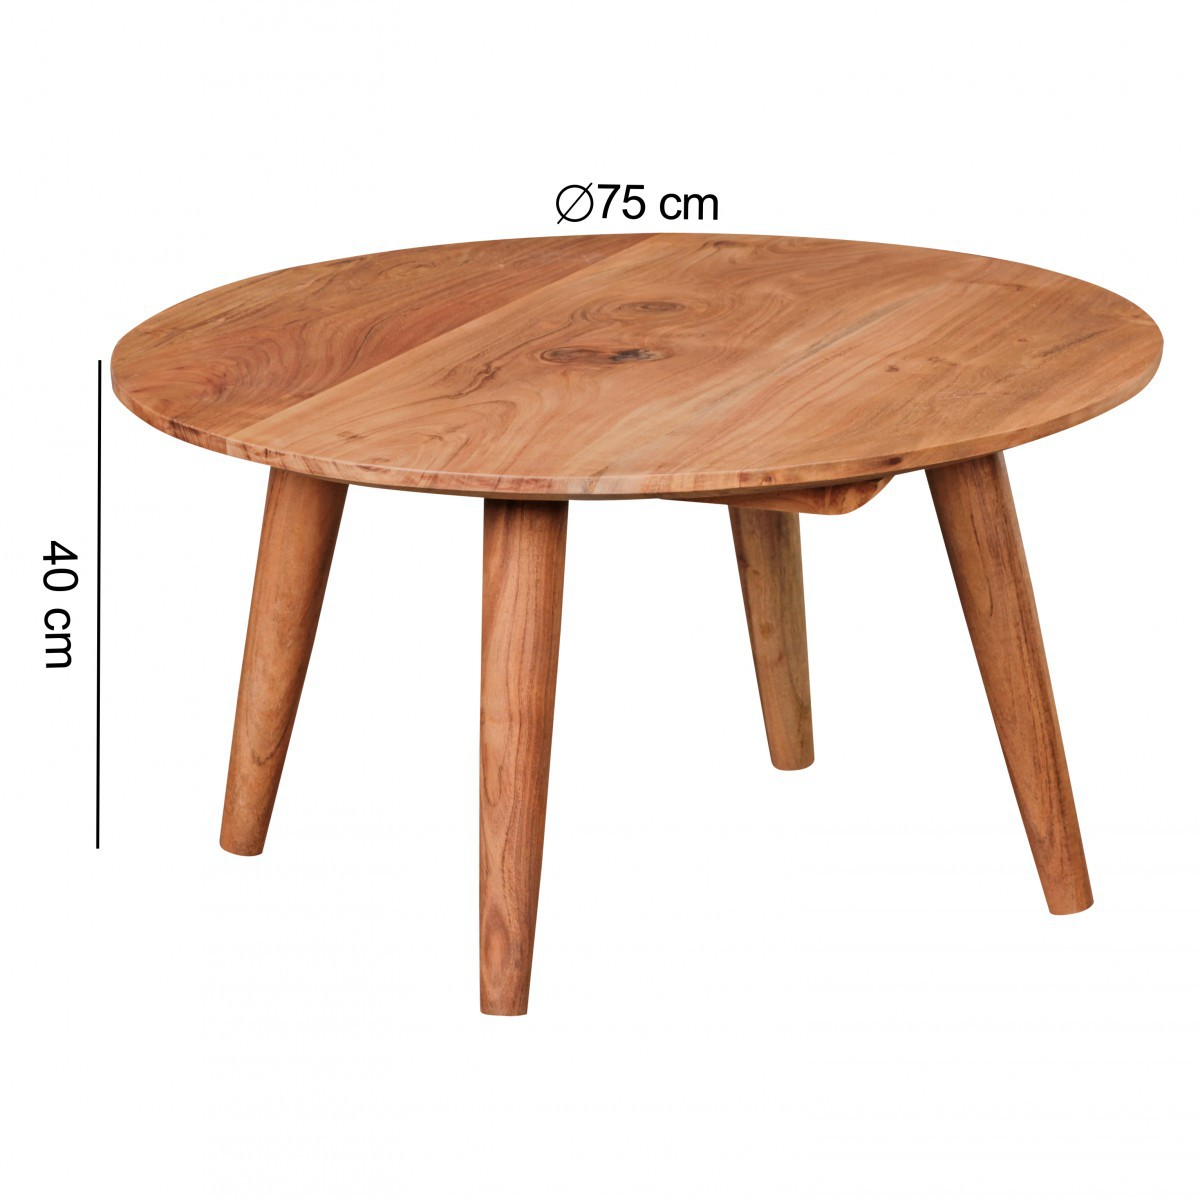 Finebuy table basse en bois massif acacia table basse ronde 75 x 40 cm ferme - Table basse gigogne bois ...